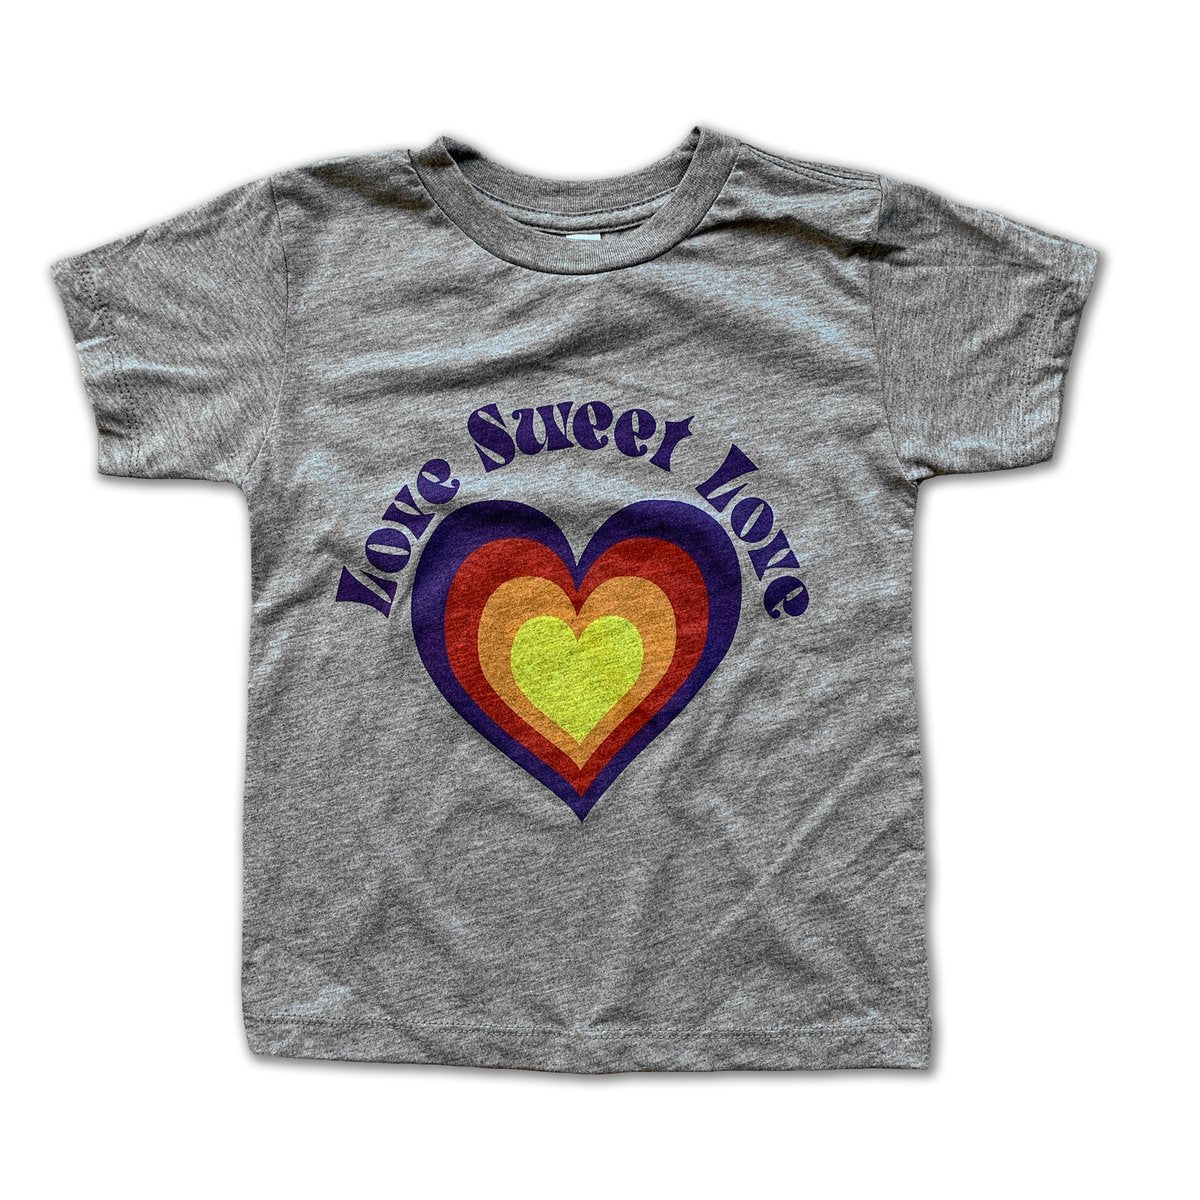 Rivet Apparel Co. - Love Sweet Love Tee